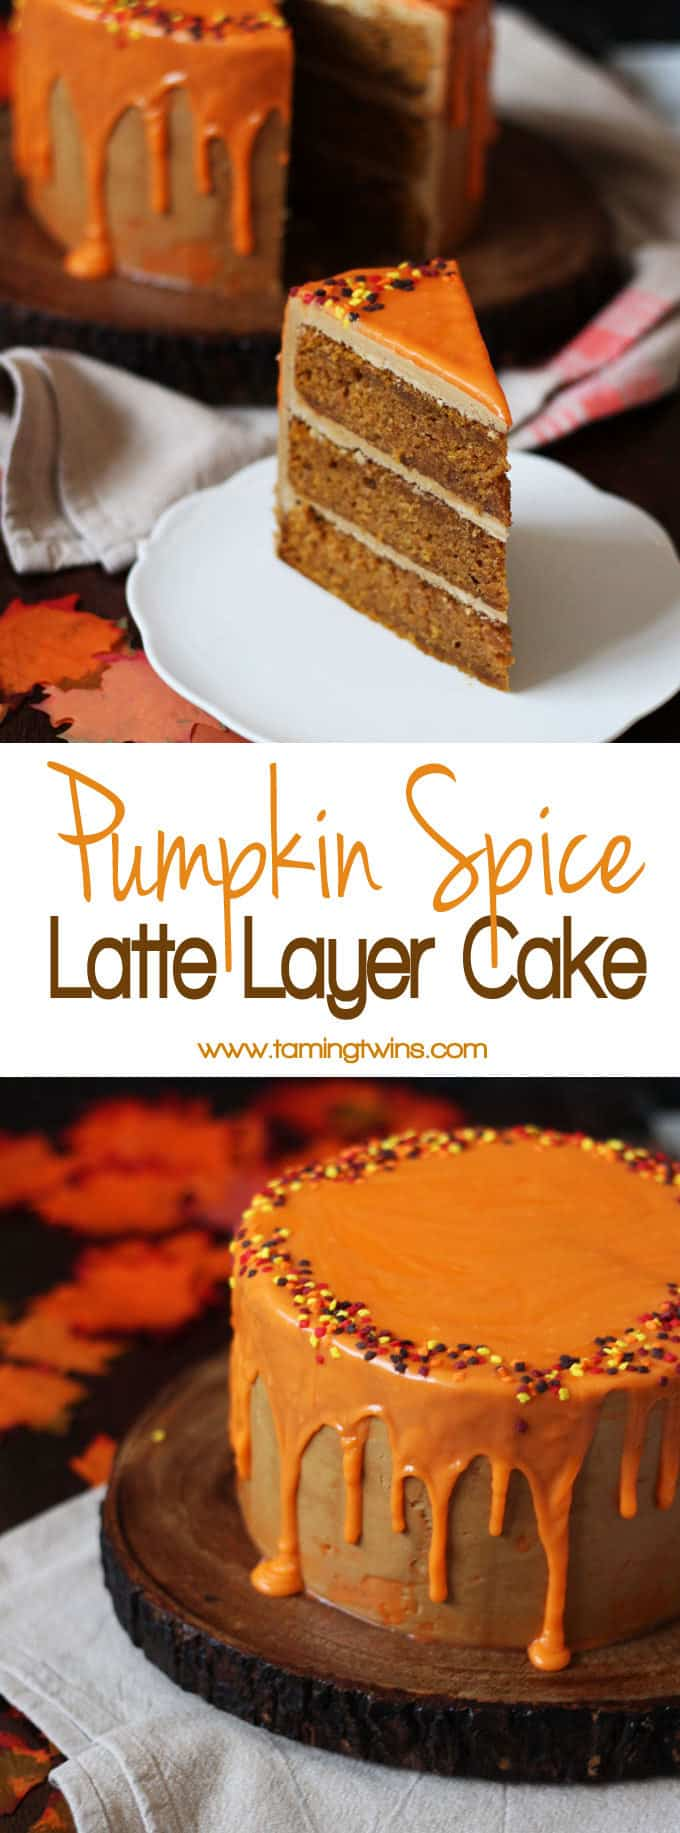 THE Pumpkin Spice Latte Cake Recipe - layers of soft pumpkin spiced cake, with fluffy latte coffee buttercream frosting and a white chocolate ganache icing drizzle. The best Autumn (or fall!) cake. Here's how to make a Pumpkin Spice Latte Layer Cake!